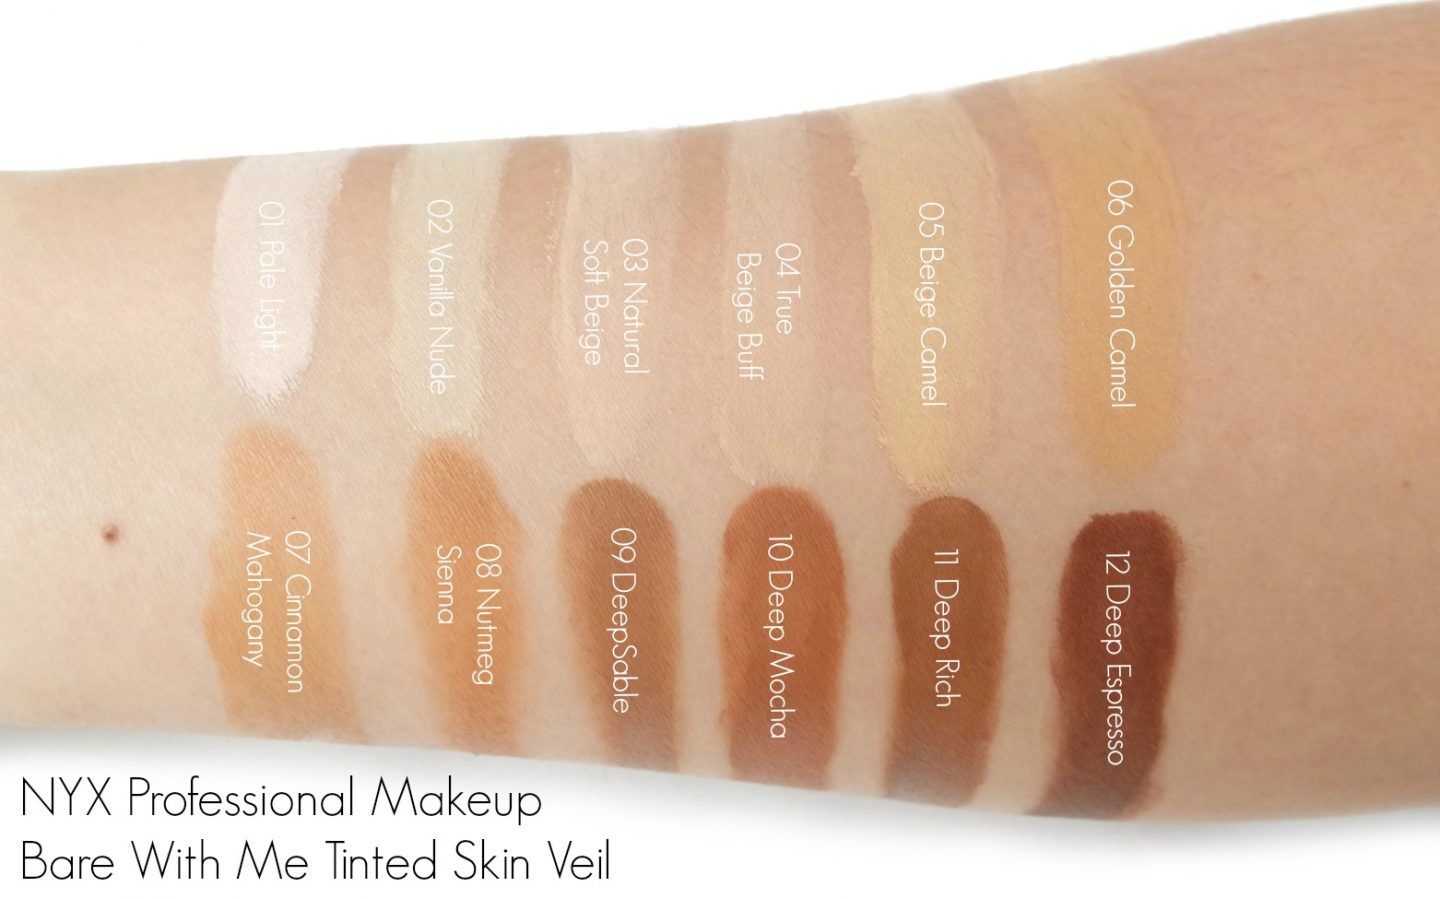 NYX Professional Makeup Bare With Me Tinted Skin Veil Swatches